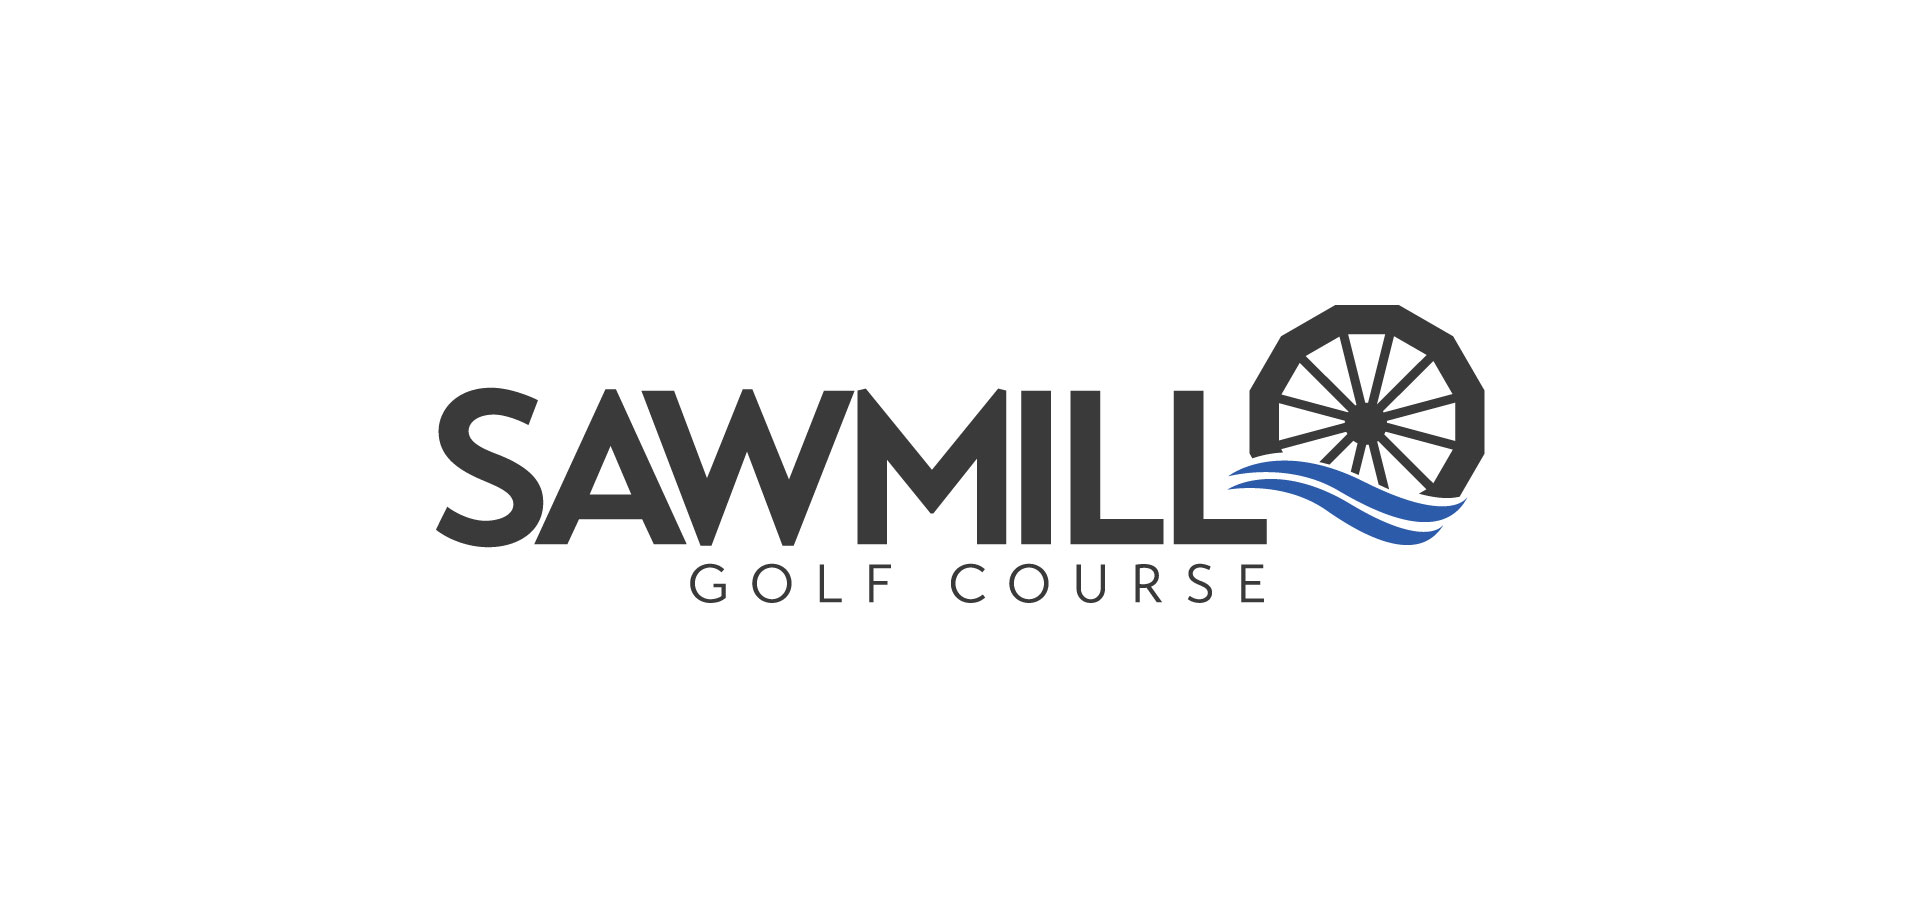 Sawmill Golf Course Main Image